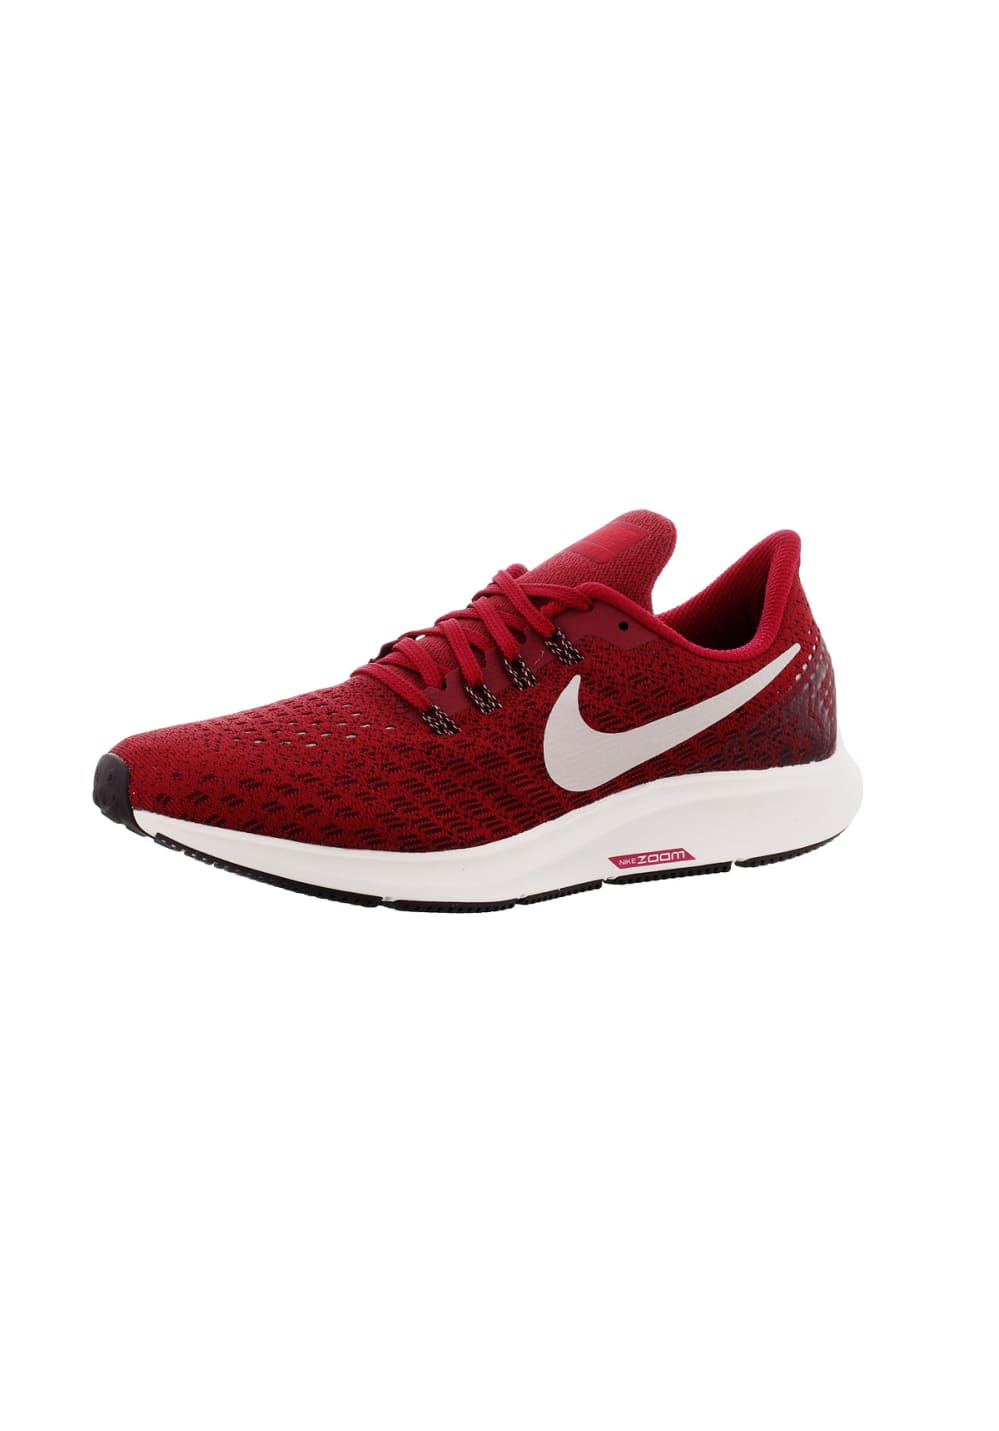 2d0c1f770b Nike Air Zoom Pegasus 35 - Running shoes for Women - Red